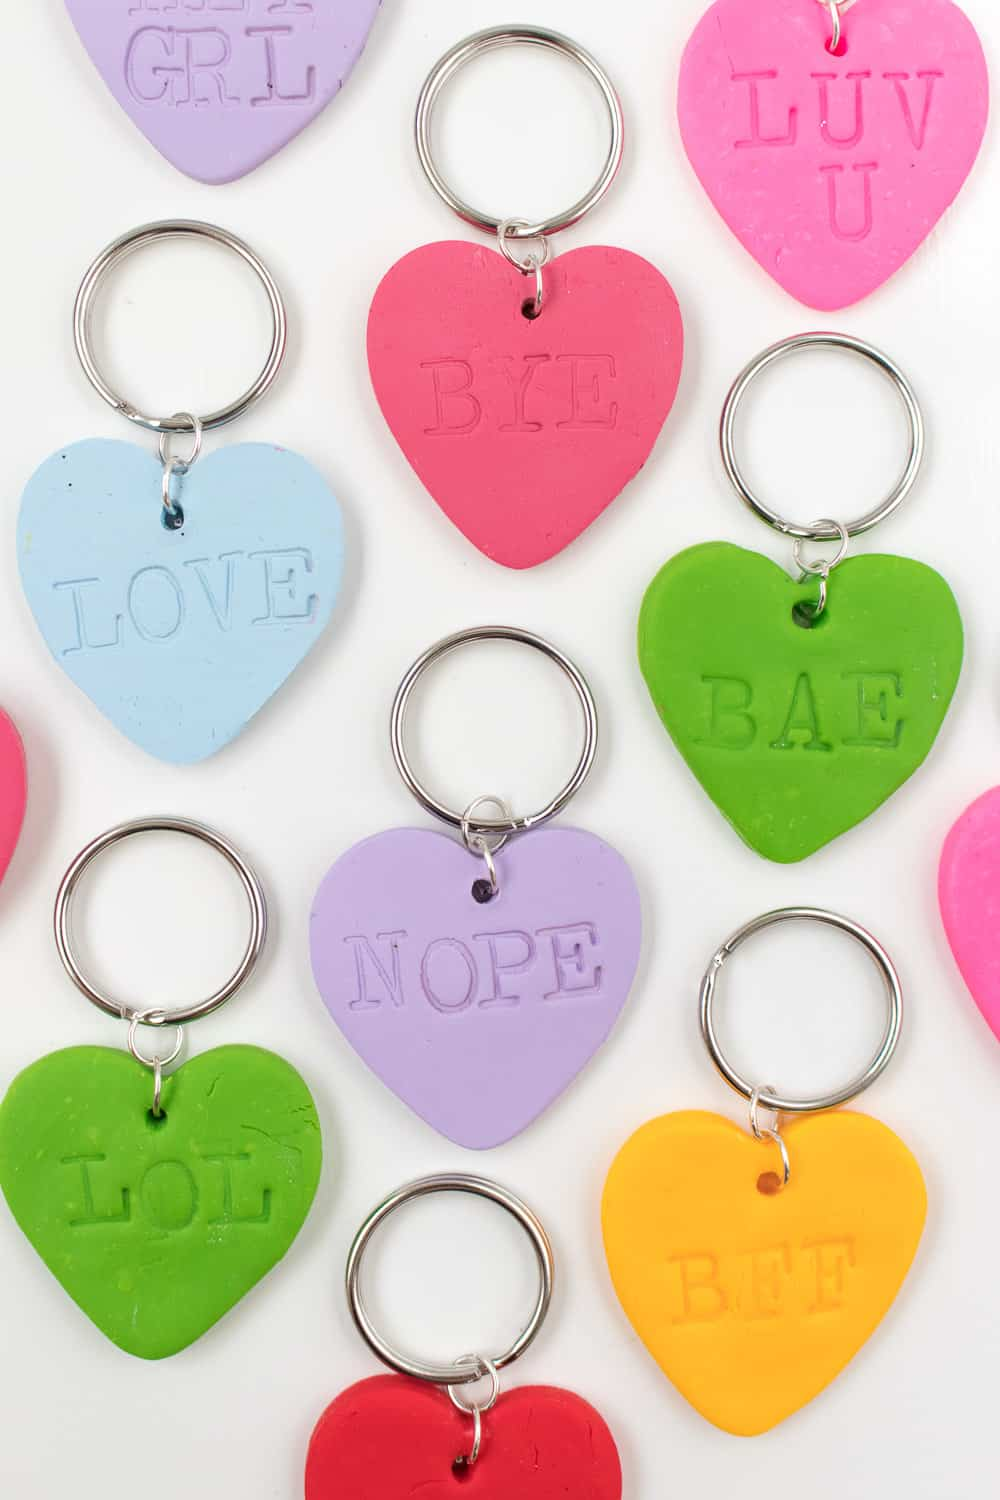 Diy clay embossed heart keychains